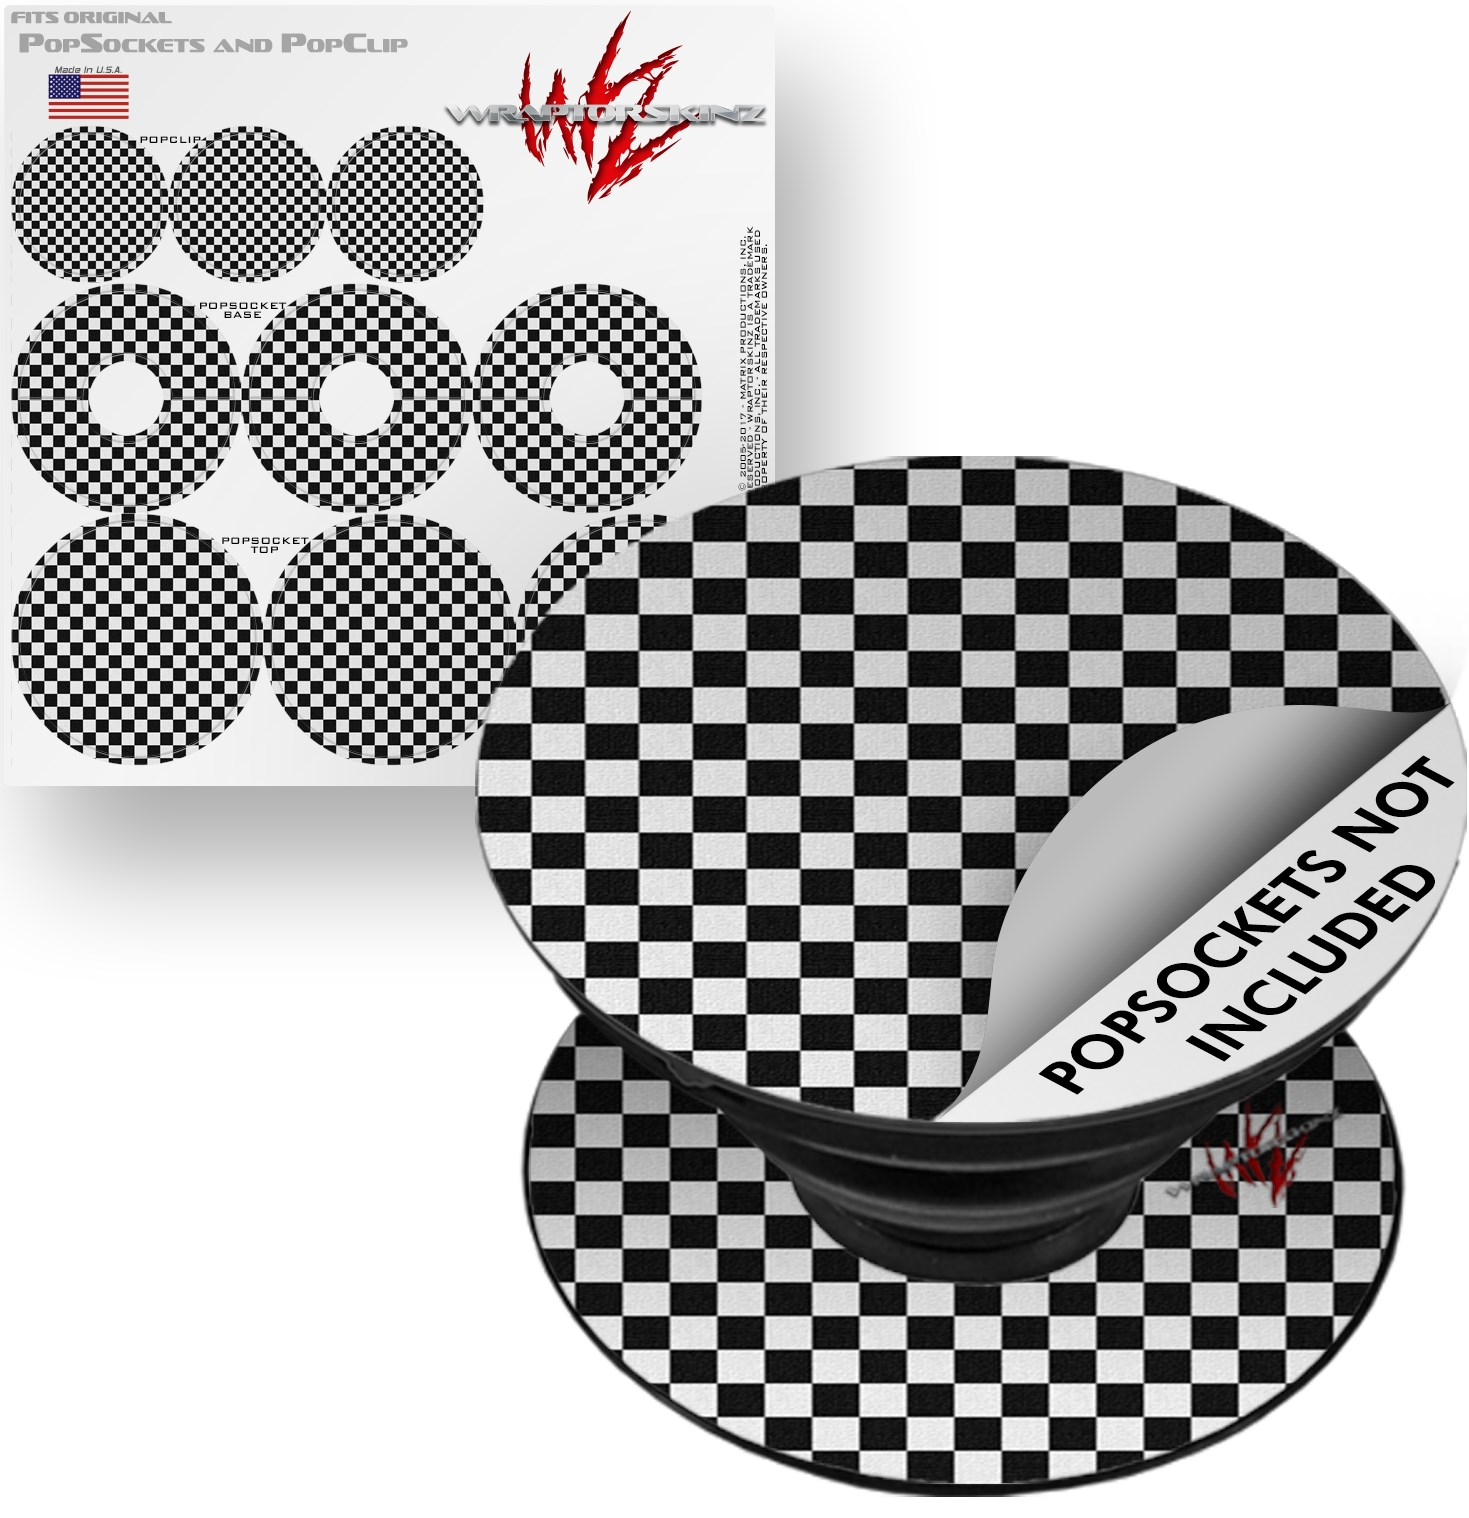 Decal Style Vinyl Skin Wrap 3 Pack for PopSockets Checkered Canvas Black and White (POPSOCKET NOT INCLUDED) by WraptorSkinz